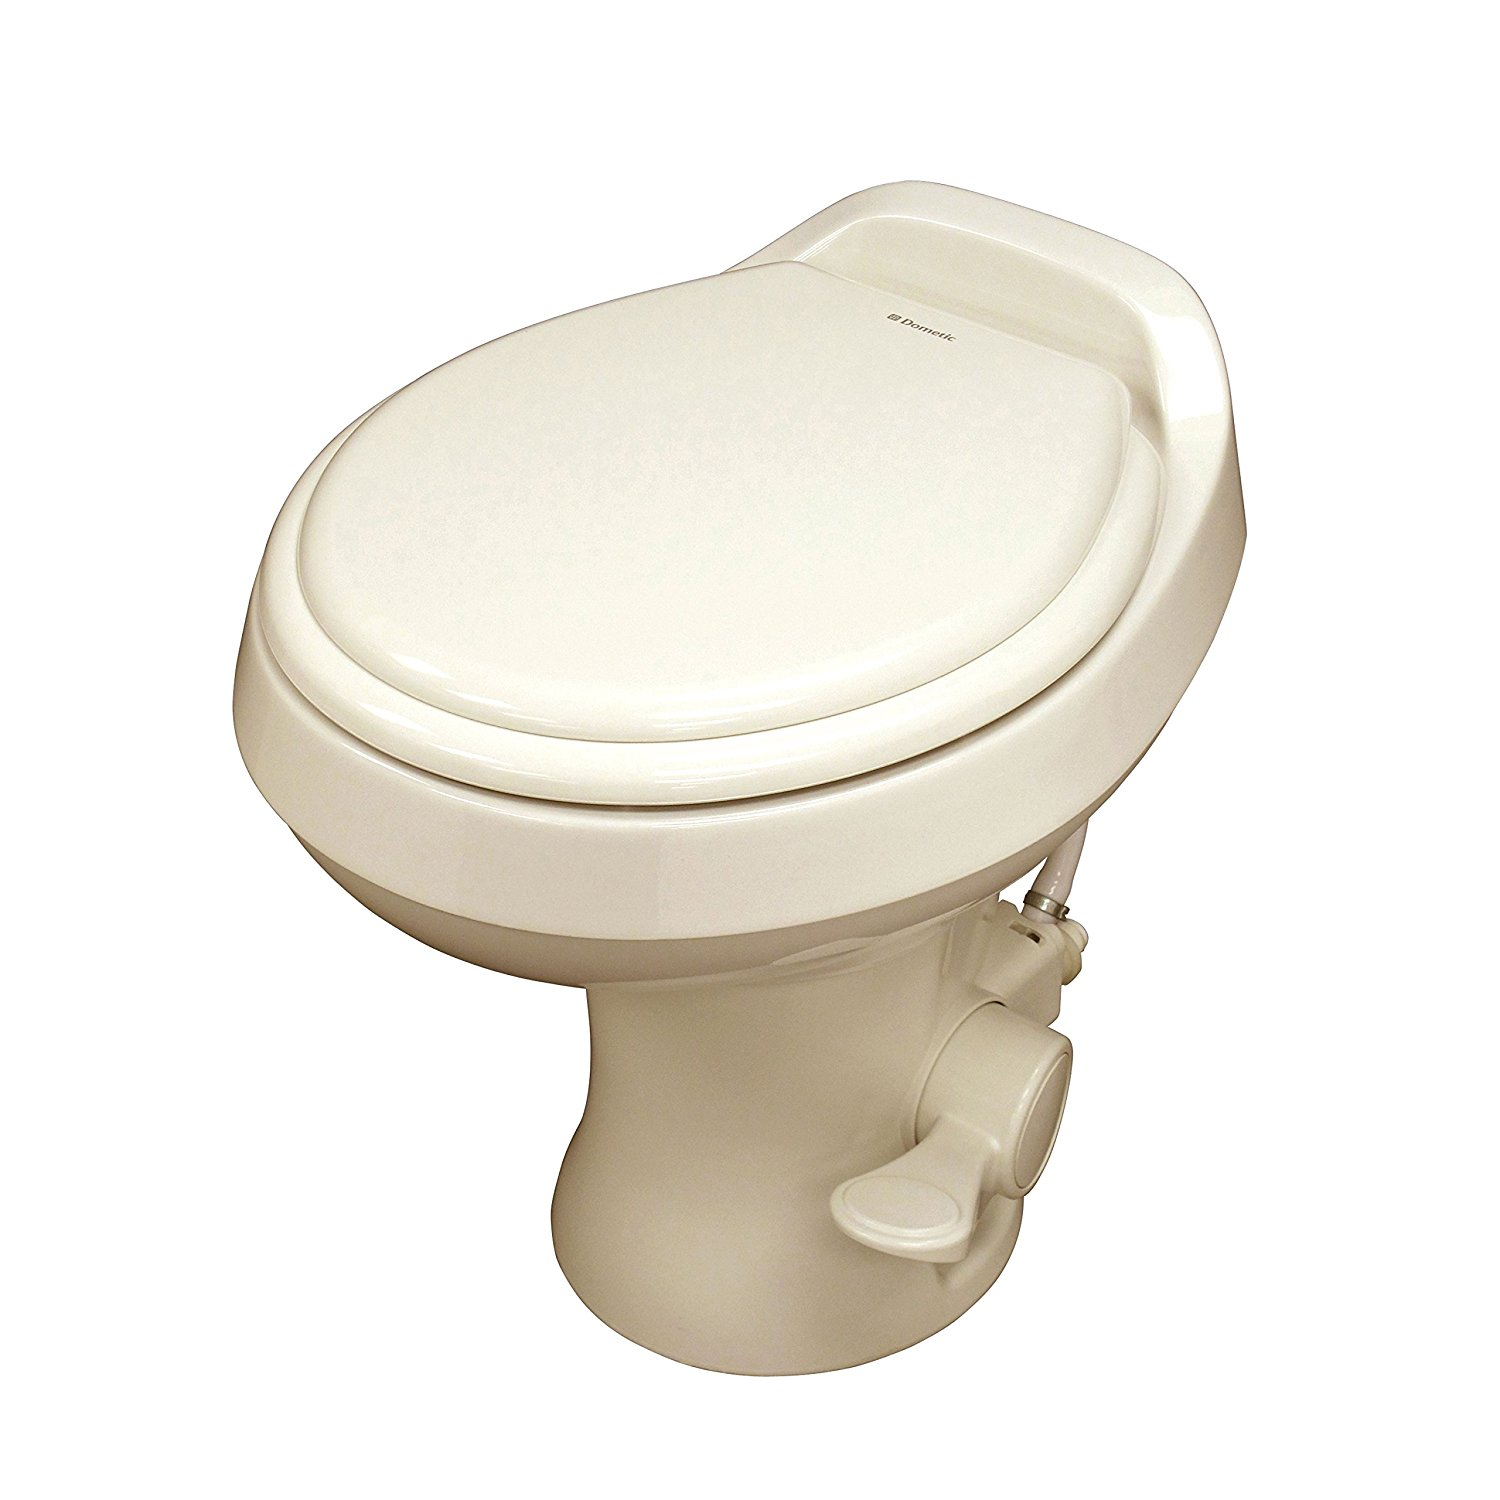 Dometic 300 Series Standard Height Toilet